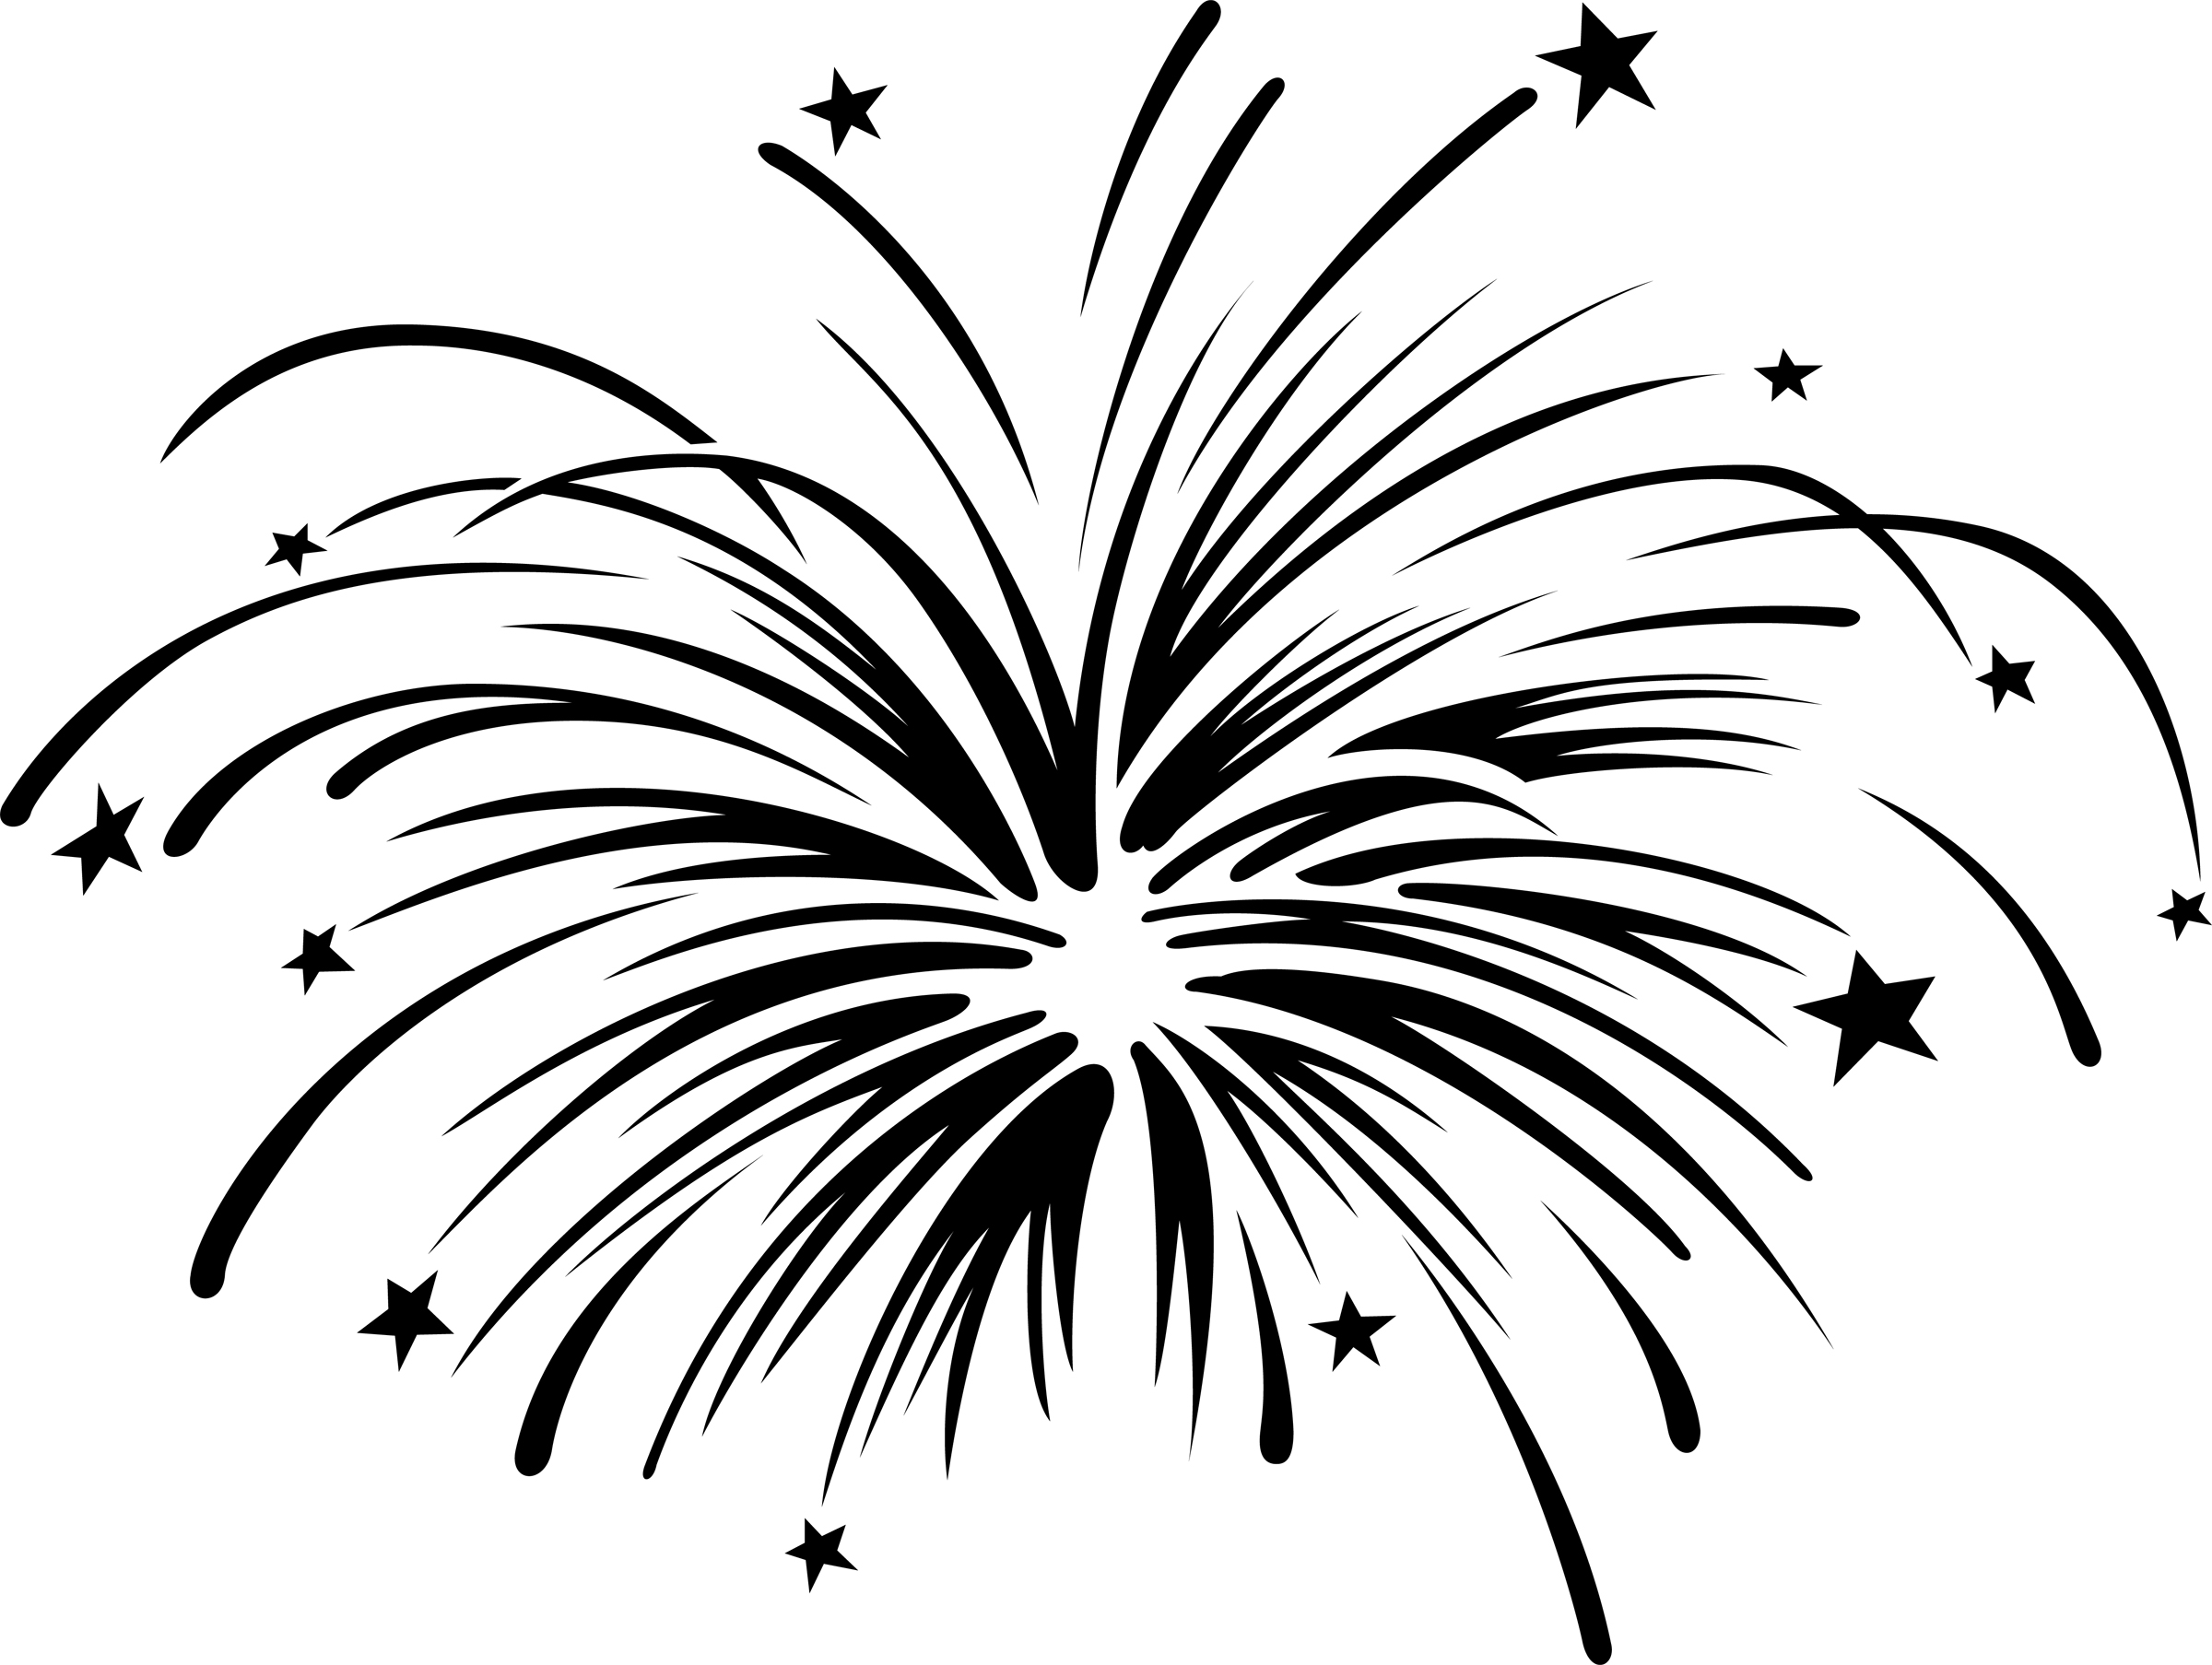 Fireworks clipart #8, Download drawings